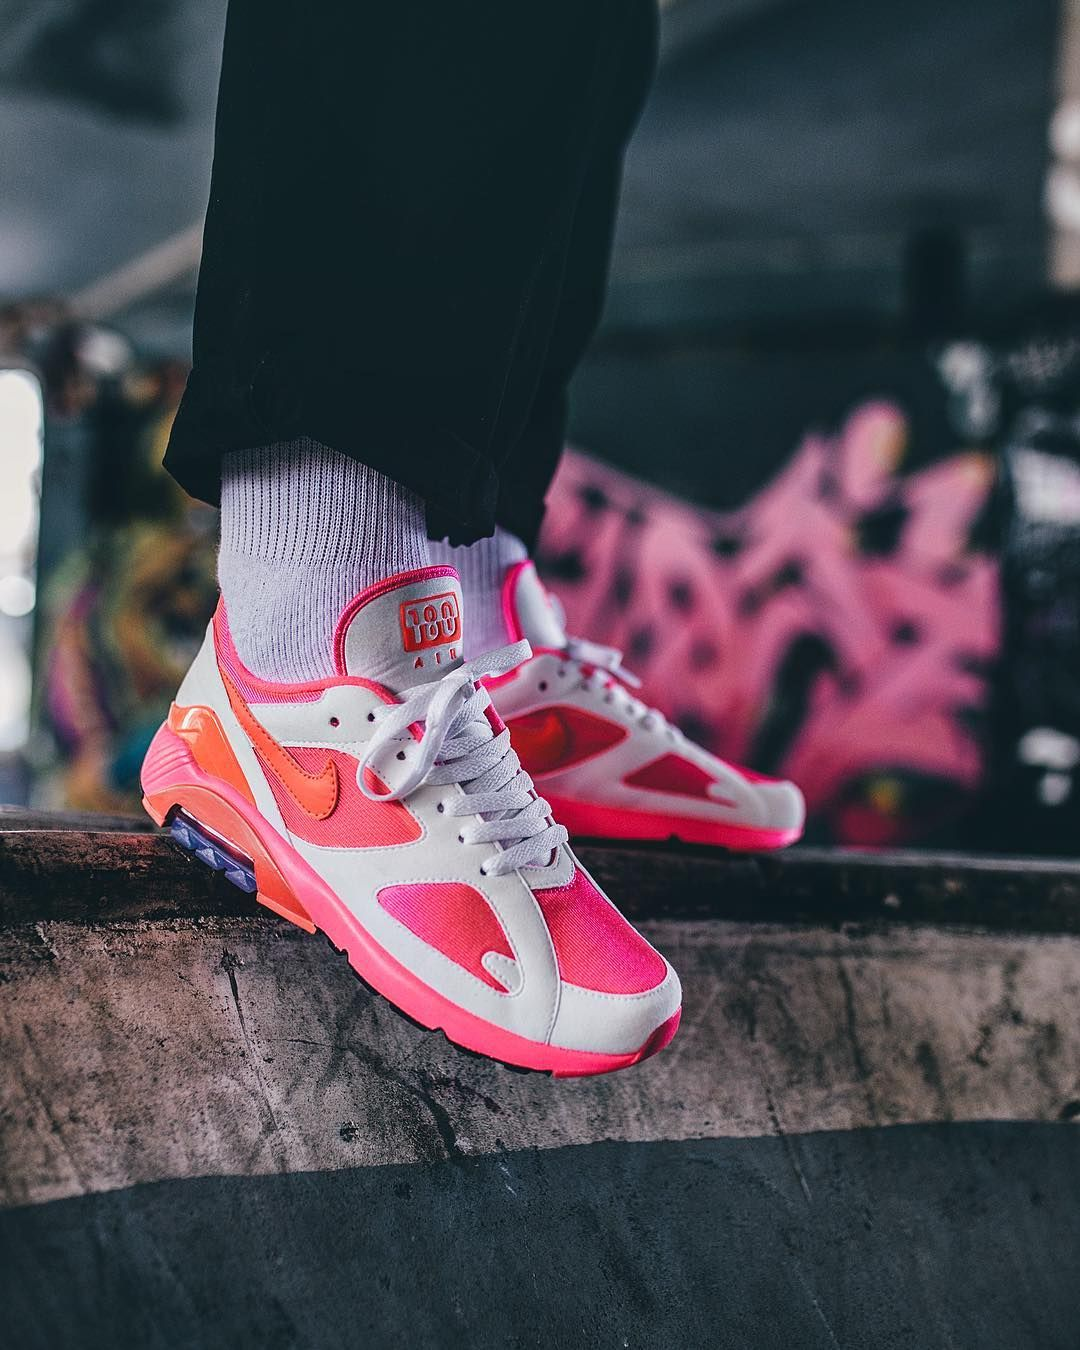 2287bc6528 COMME des Garcons x Nike Air Max 180 CDG Pink AO4641-602 | nike from ...